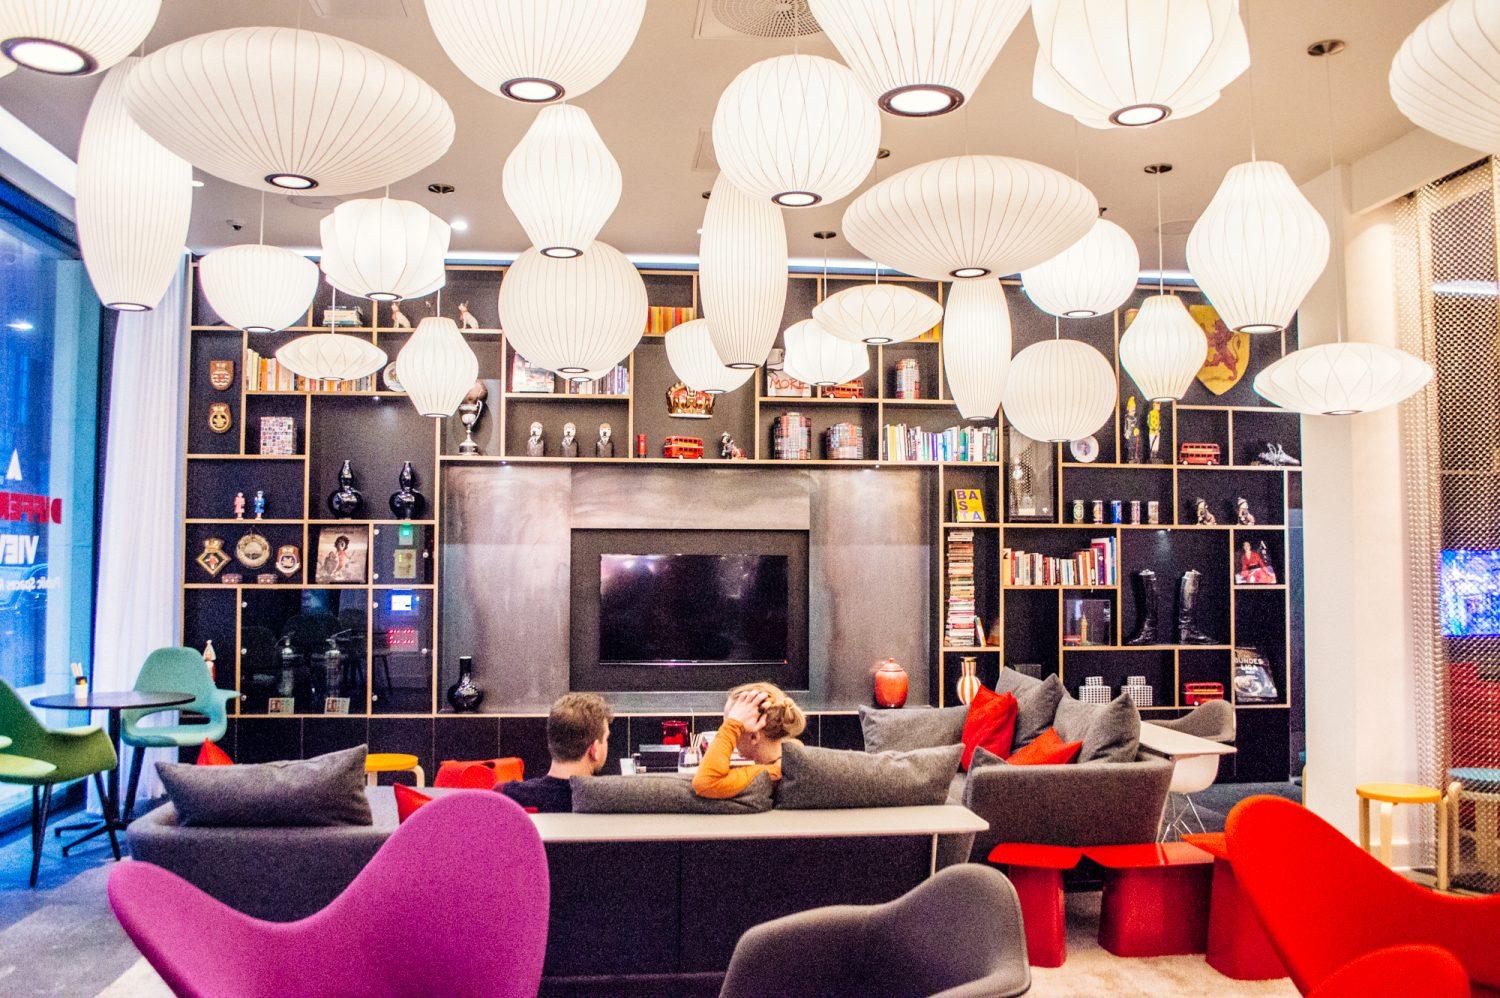 An affordable luxury hotel in London? YES it's possible! The citizenM Tower of London hotel might just be one of London's best deals. Click through for a detailed review with photos to see what the buzz is all about. Deciding where to stay in London just got easier!